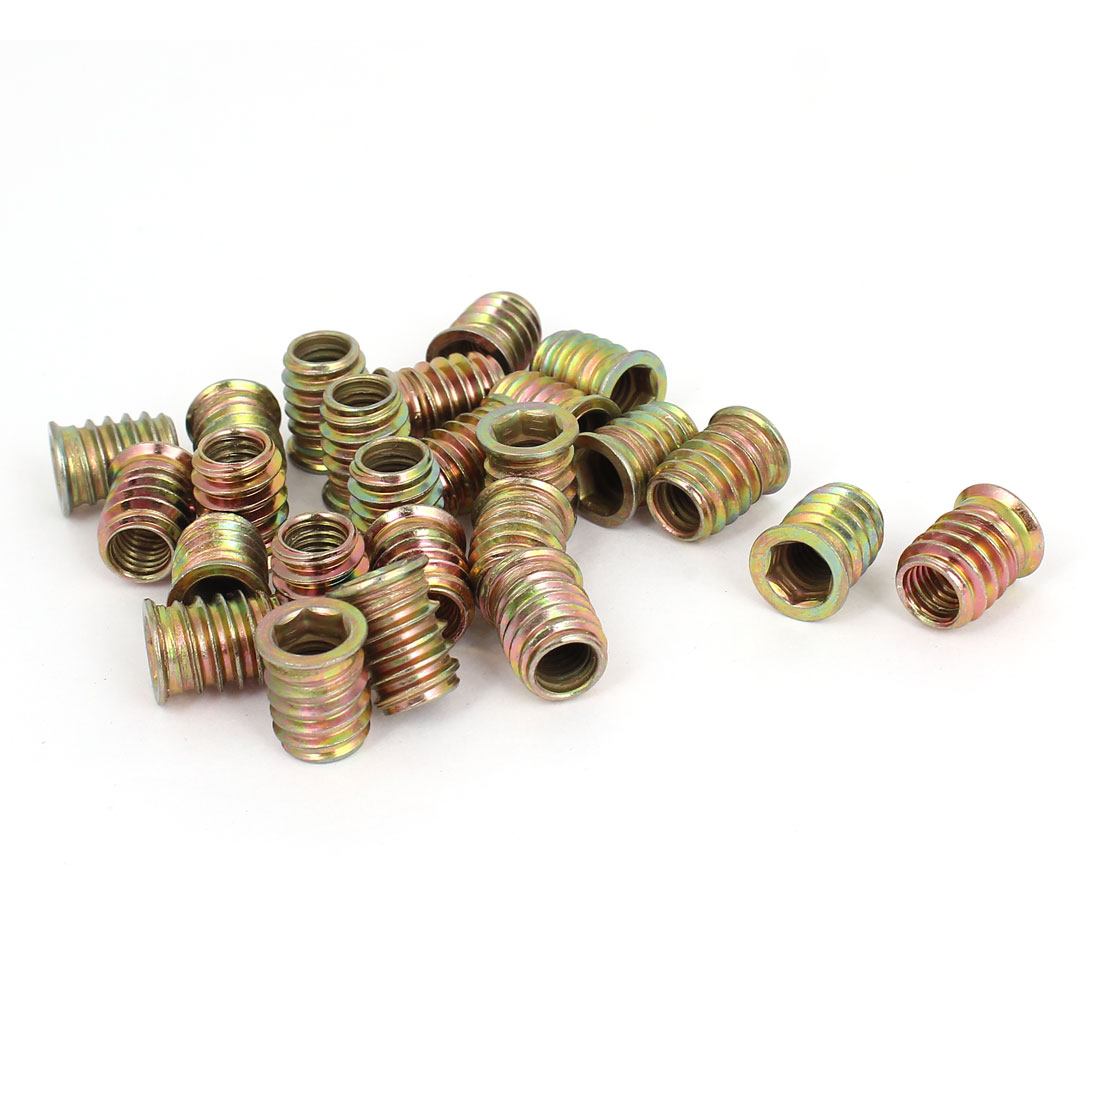 25 Pcs M8x17mm E-Nut Wood Insert Interface Screws Hexagonal Socket Nut Fittings